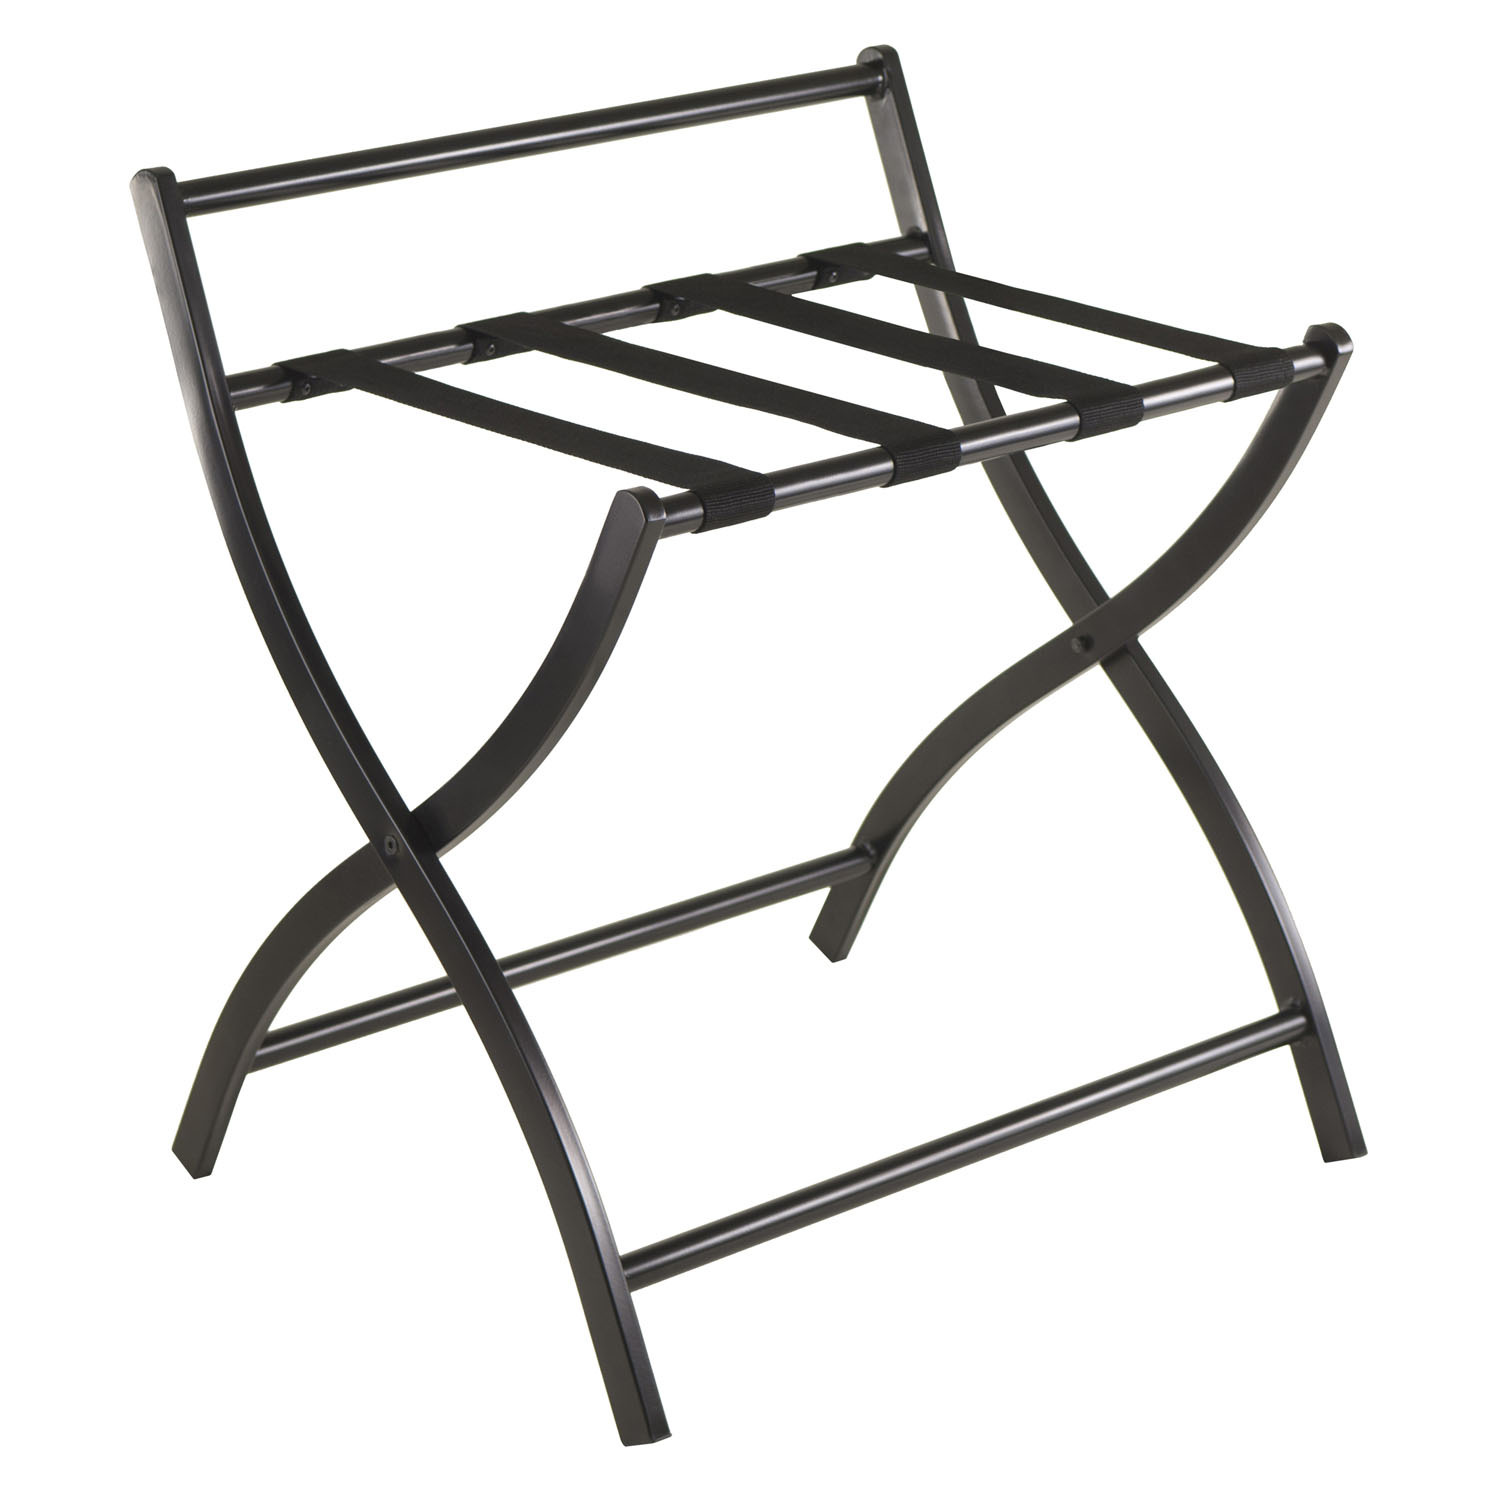 store your luggage conveniently with the legrand luggage rack